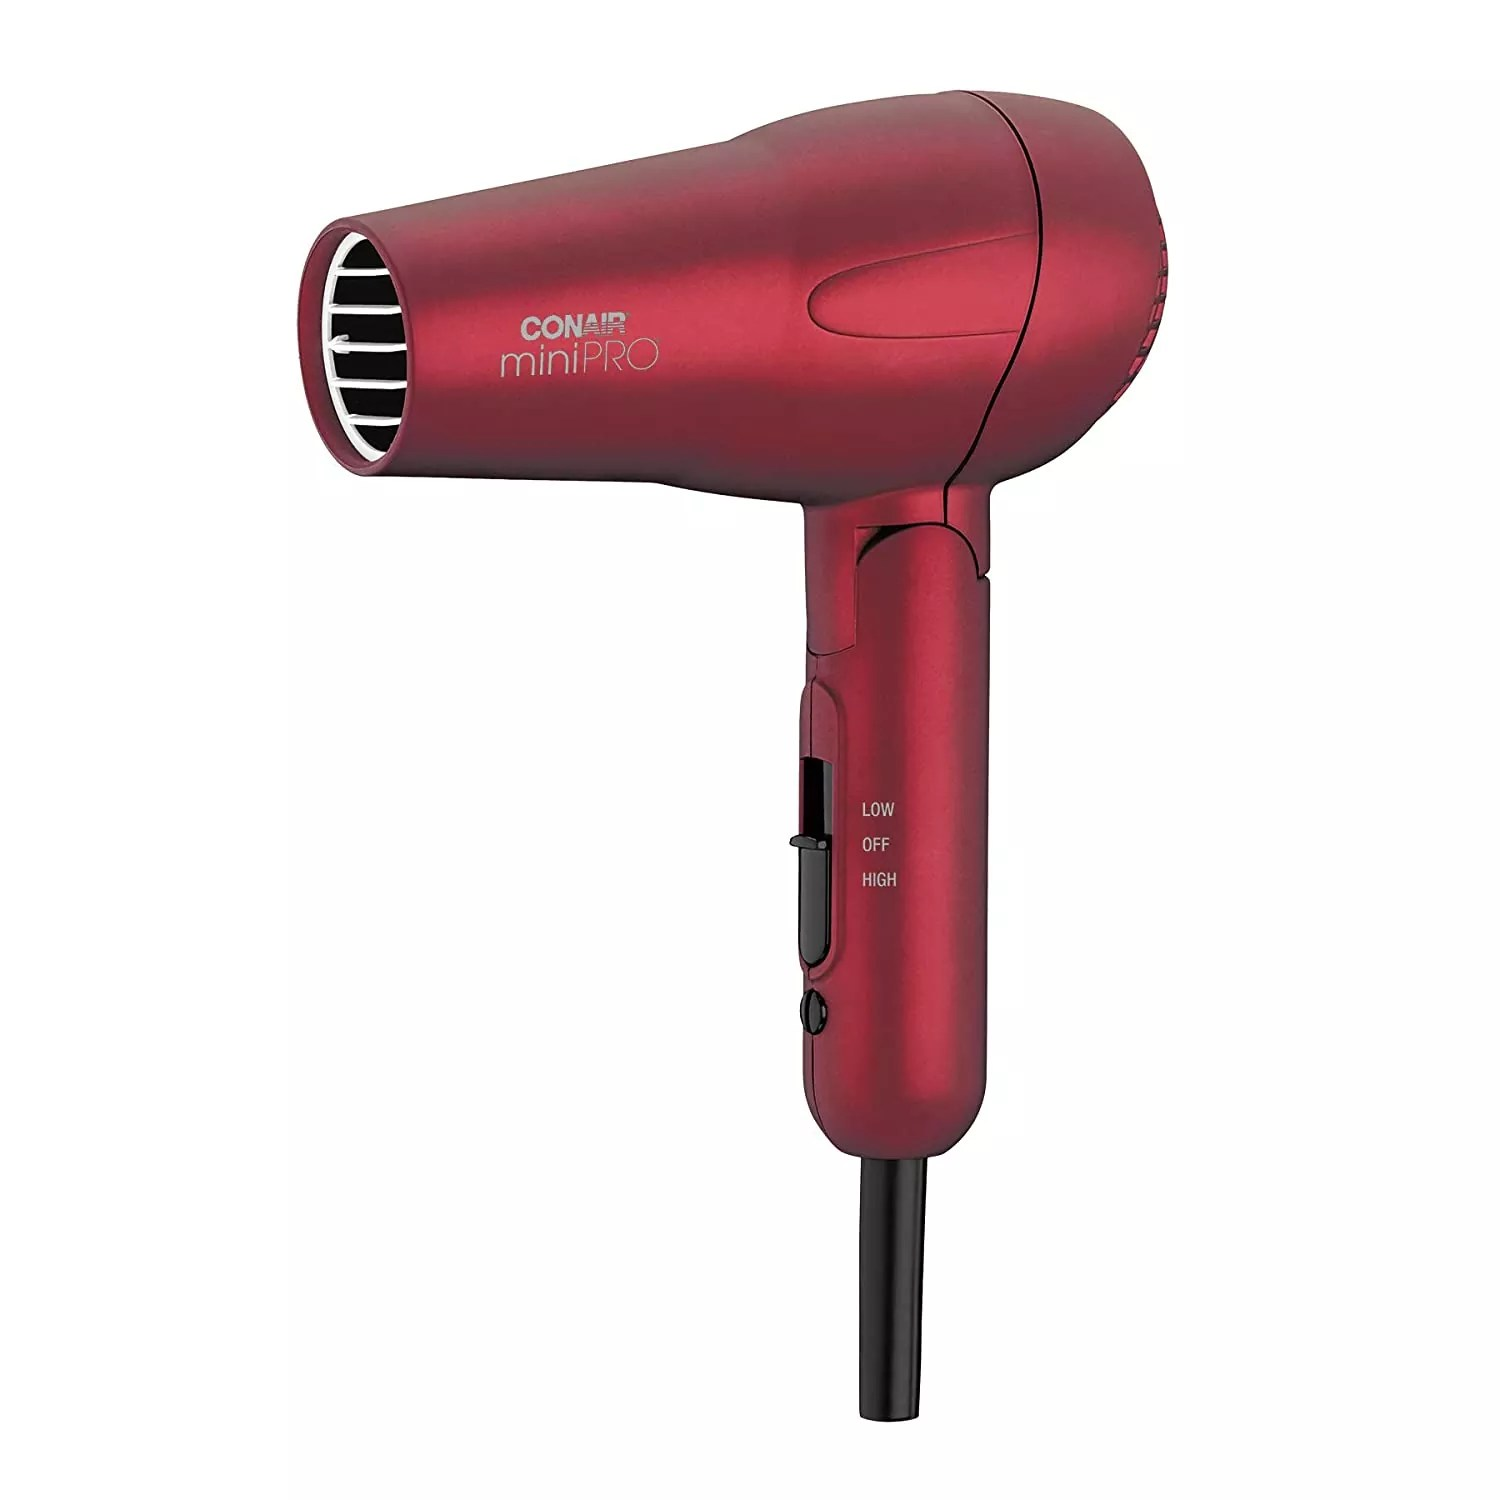 Conair miniPRO best compact hair dryer